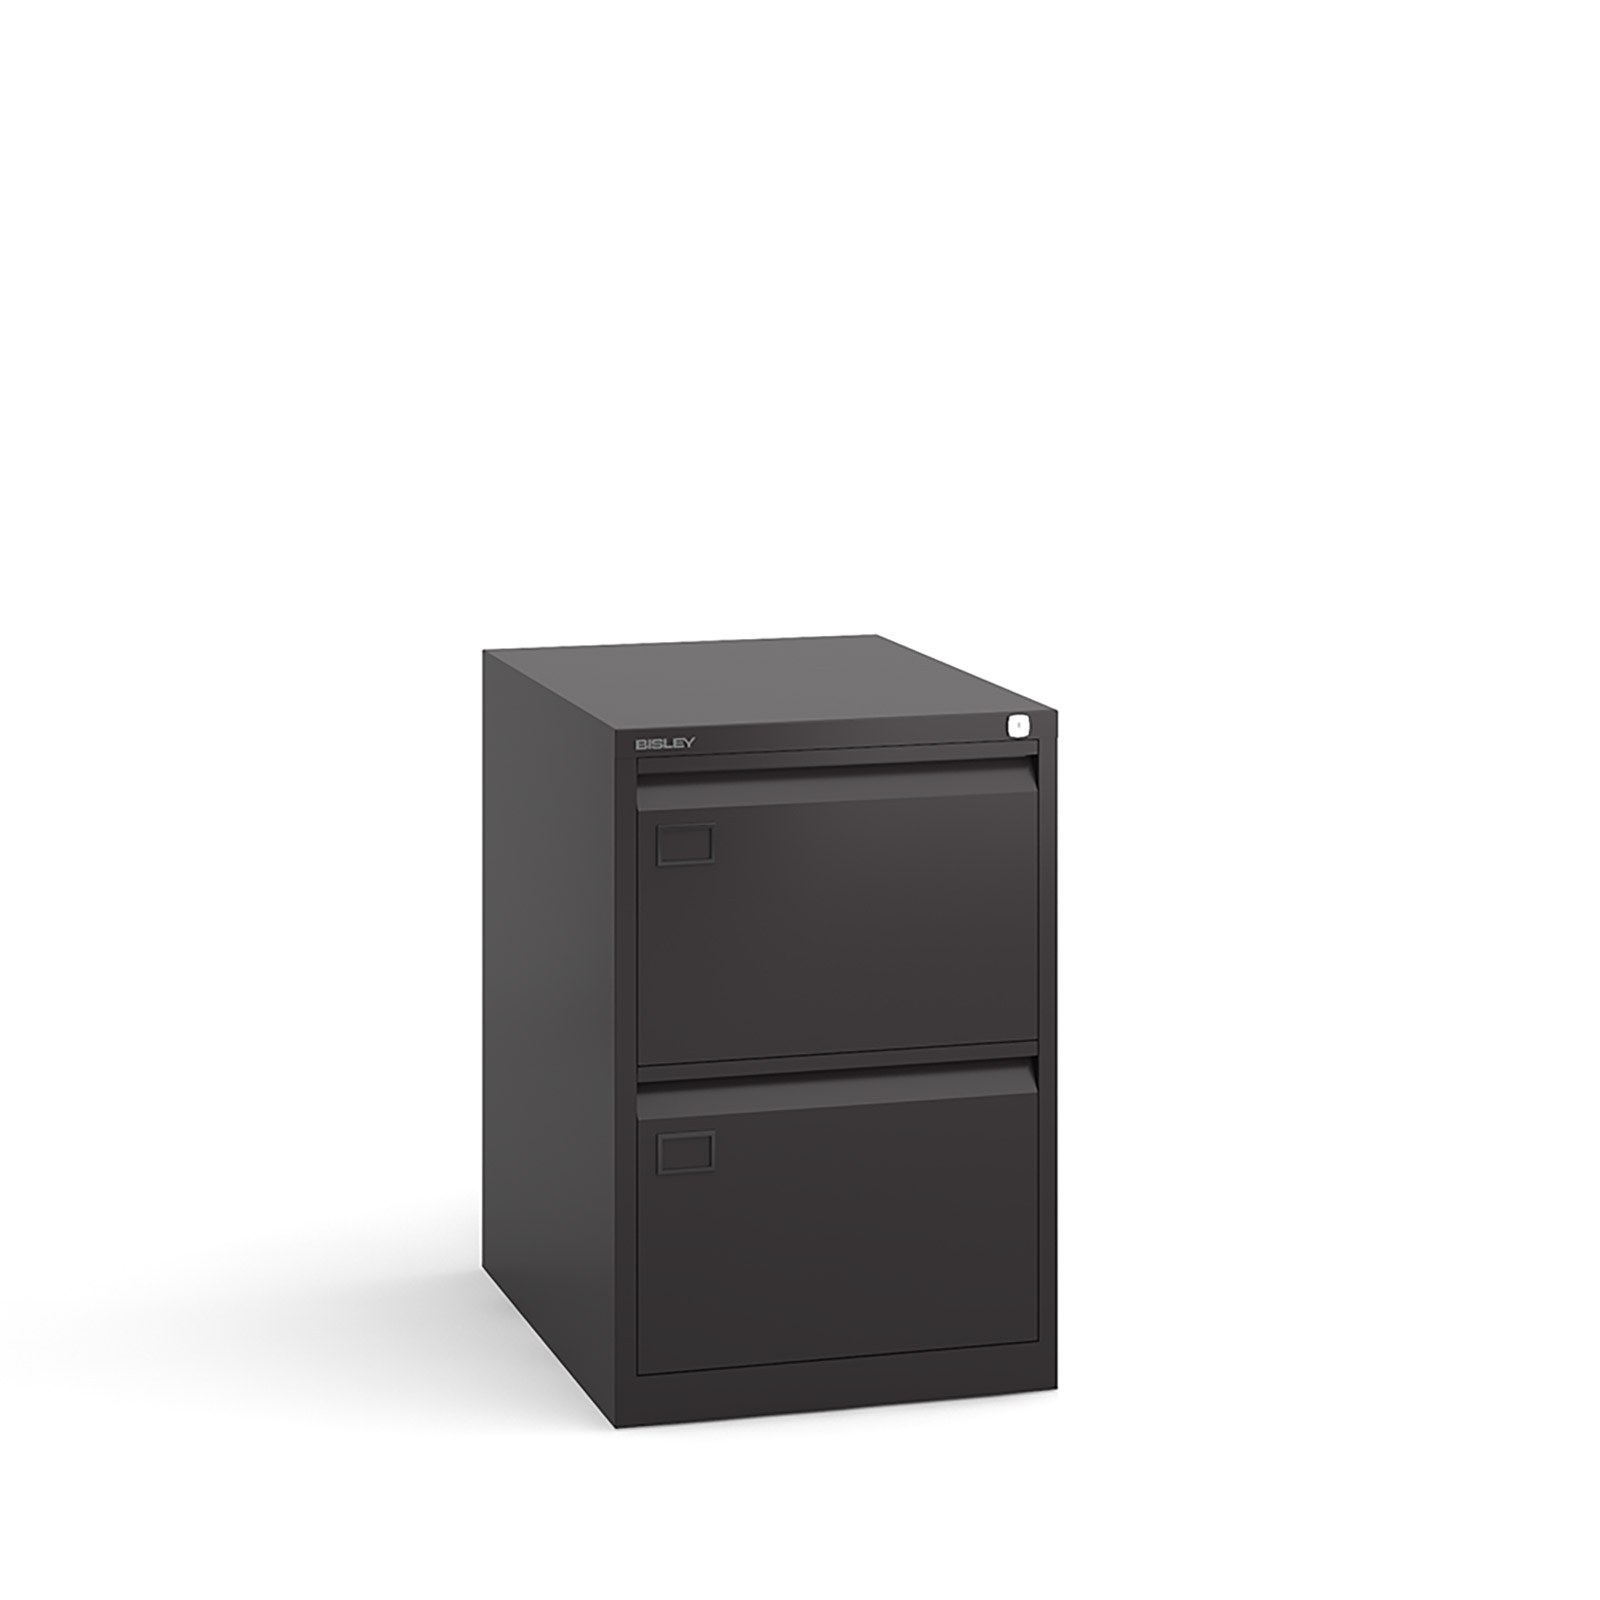 2 drawer executive filing cabinet Black